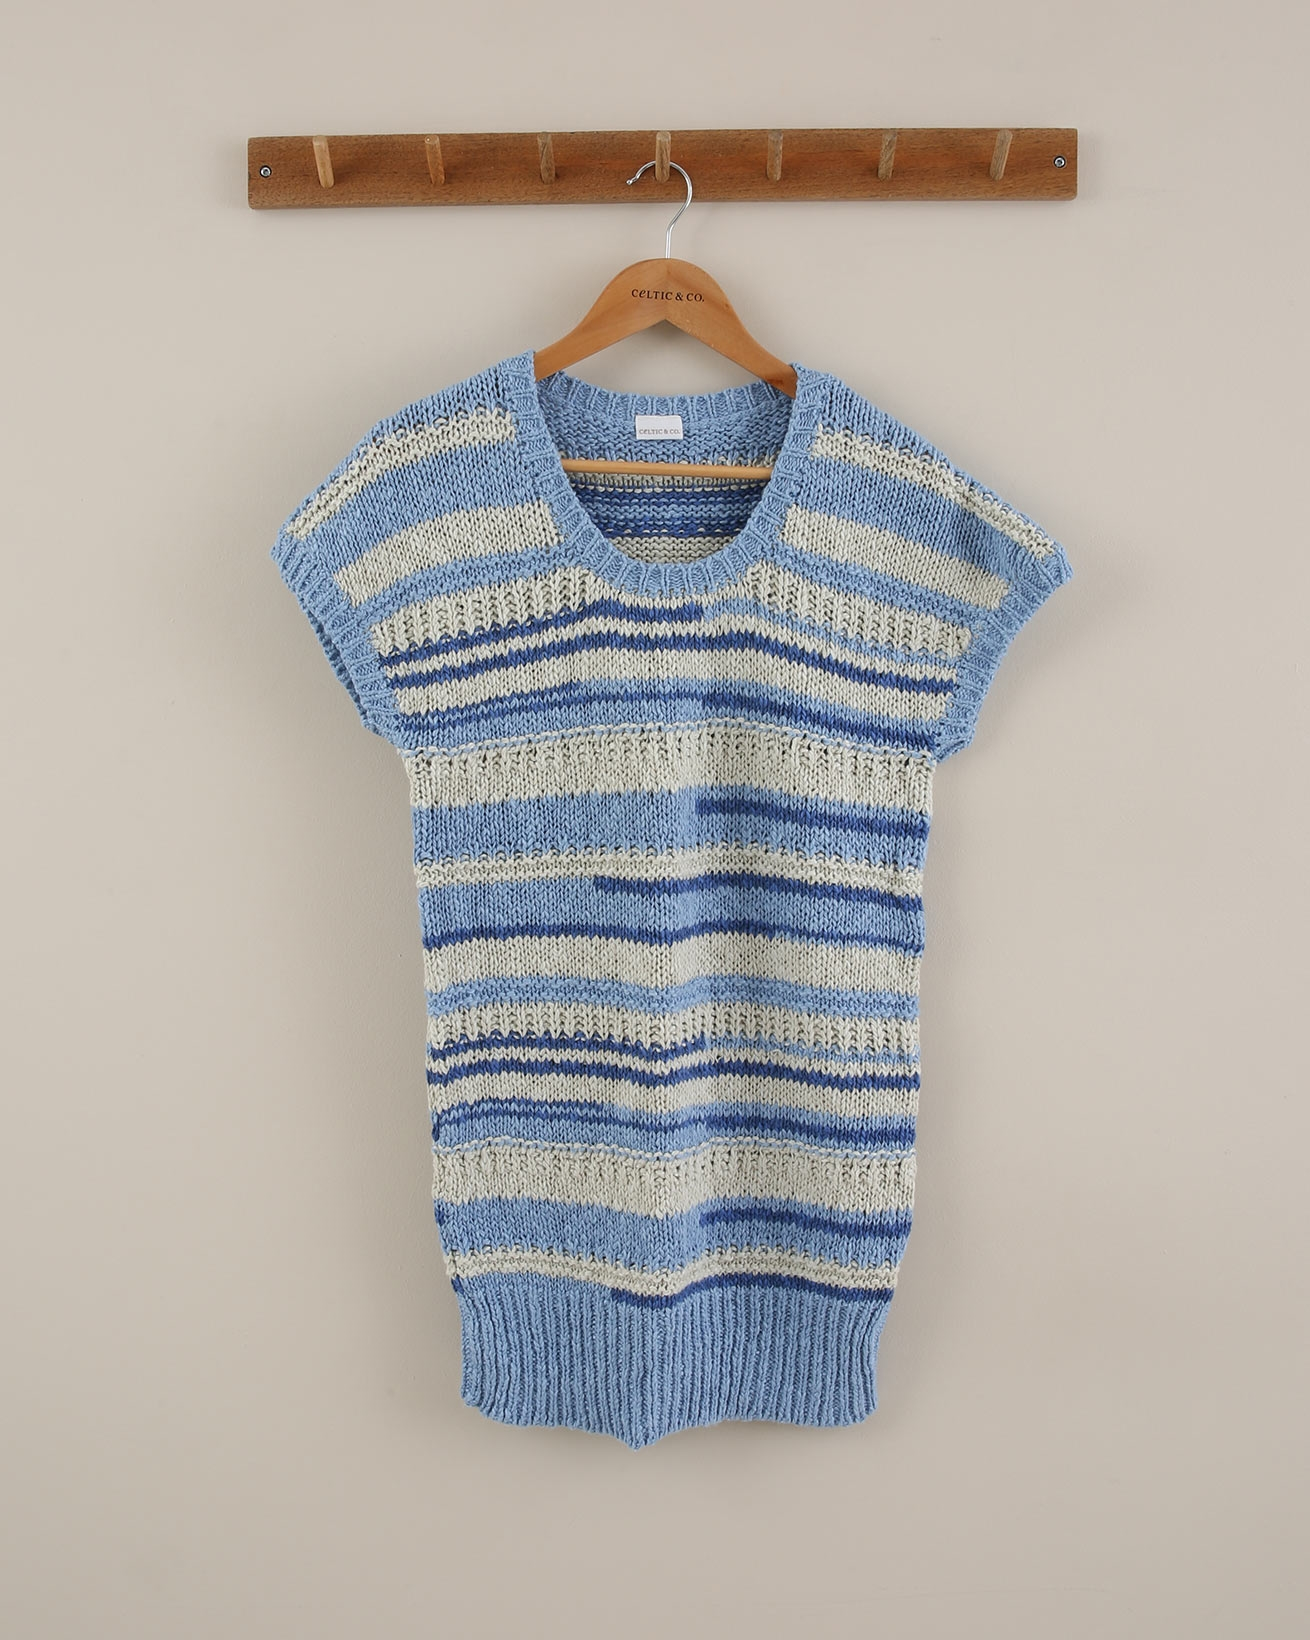 Sleeveless Knitted Tunic - Size Small - Blue/Grey Stripe - 1858